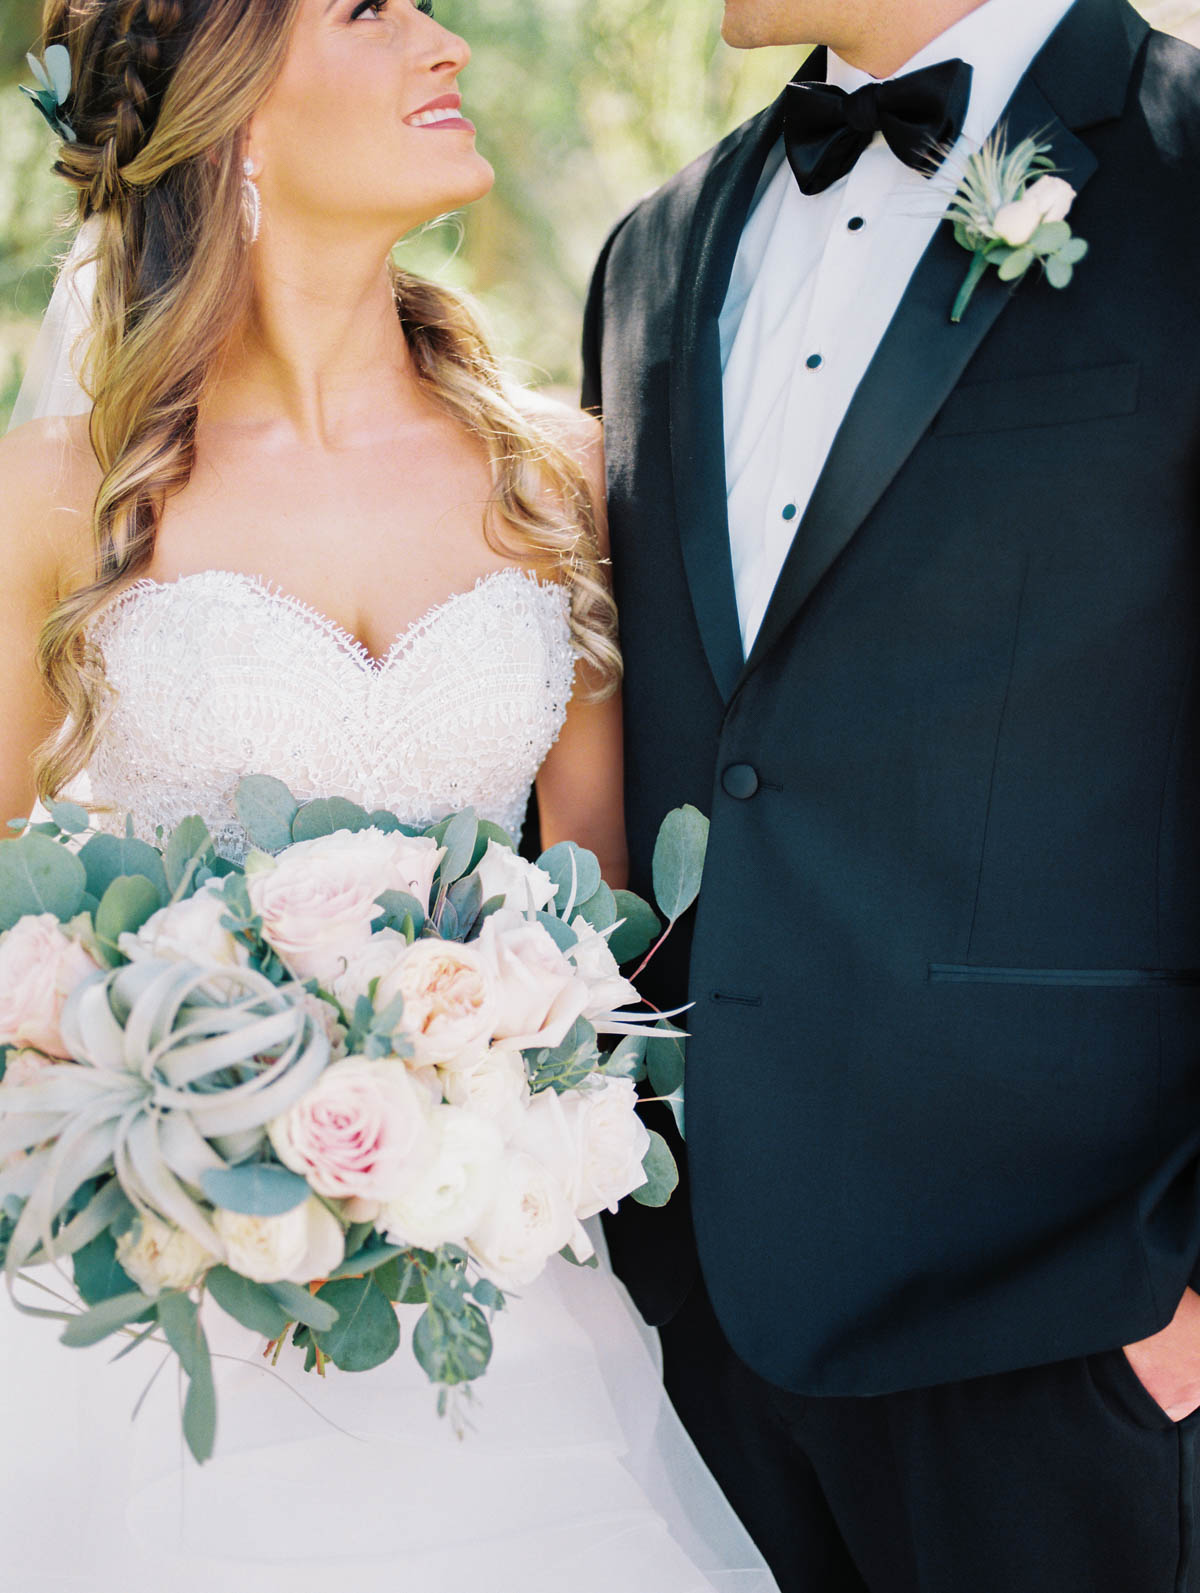 Smiling bride and groom captured by Tucson Wedding Photographers Betsy & John